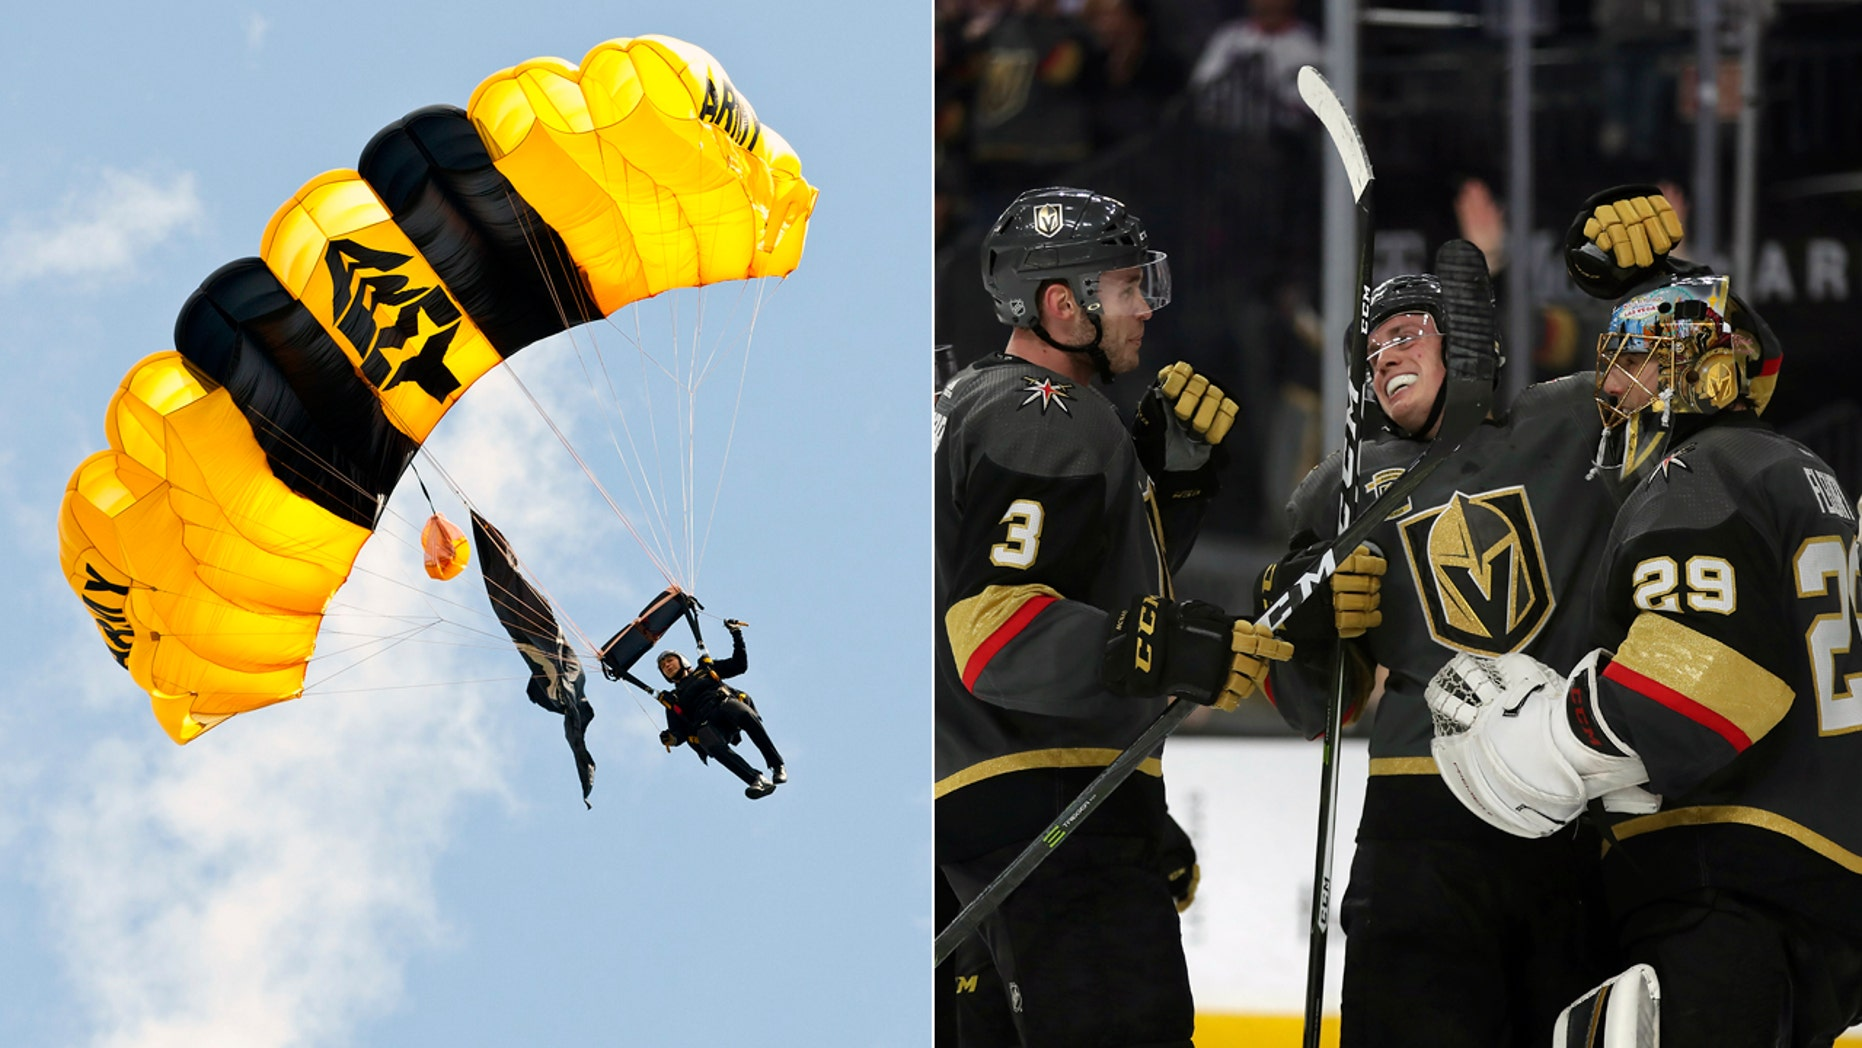 At left, a U.S. Army Golden Knight. At right, the Vegas Golden Knights.